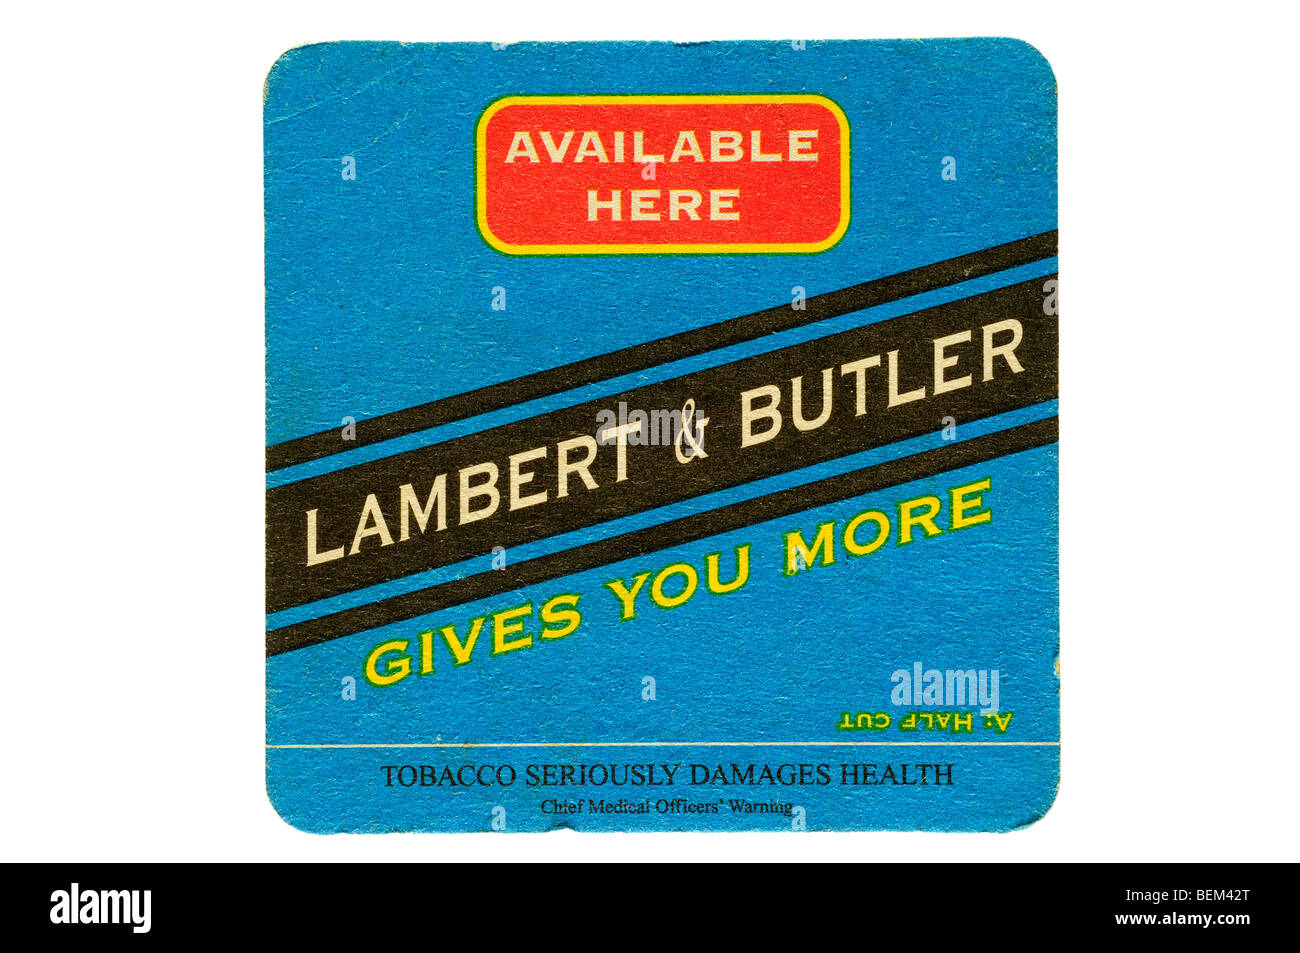 lambert and buttler gives you more - Stock Image